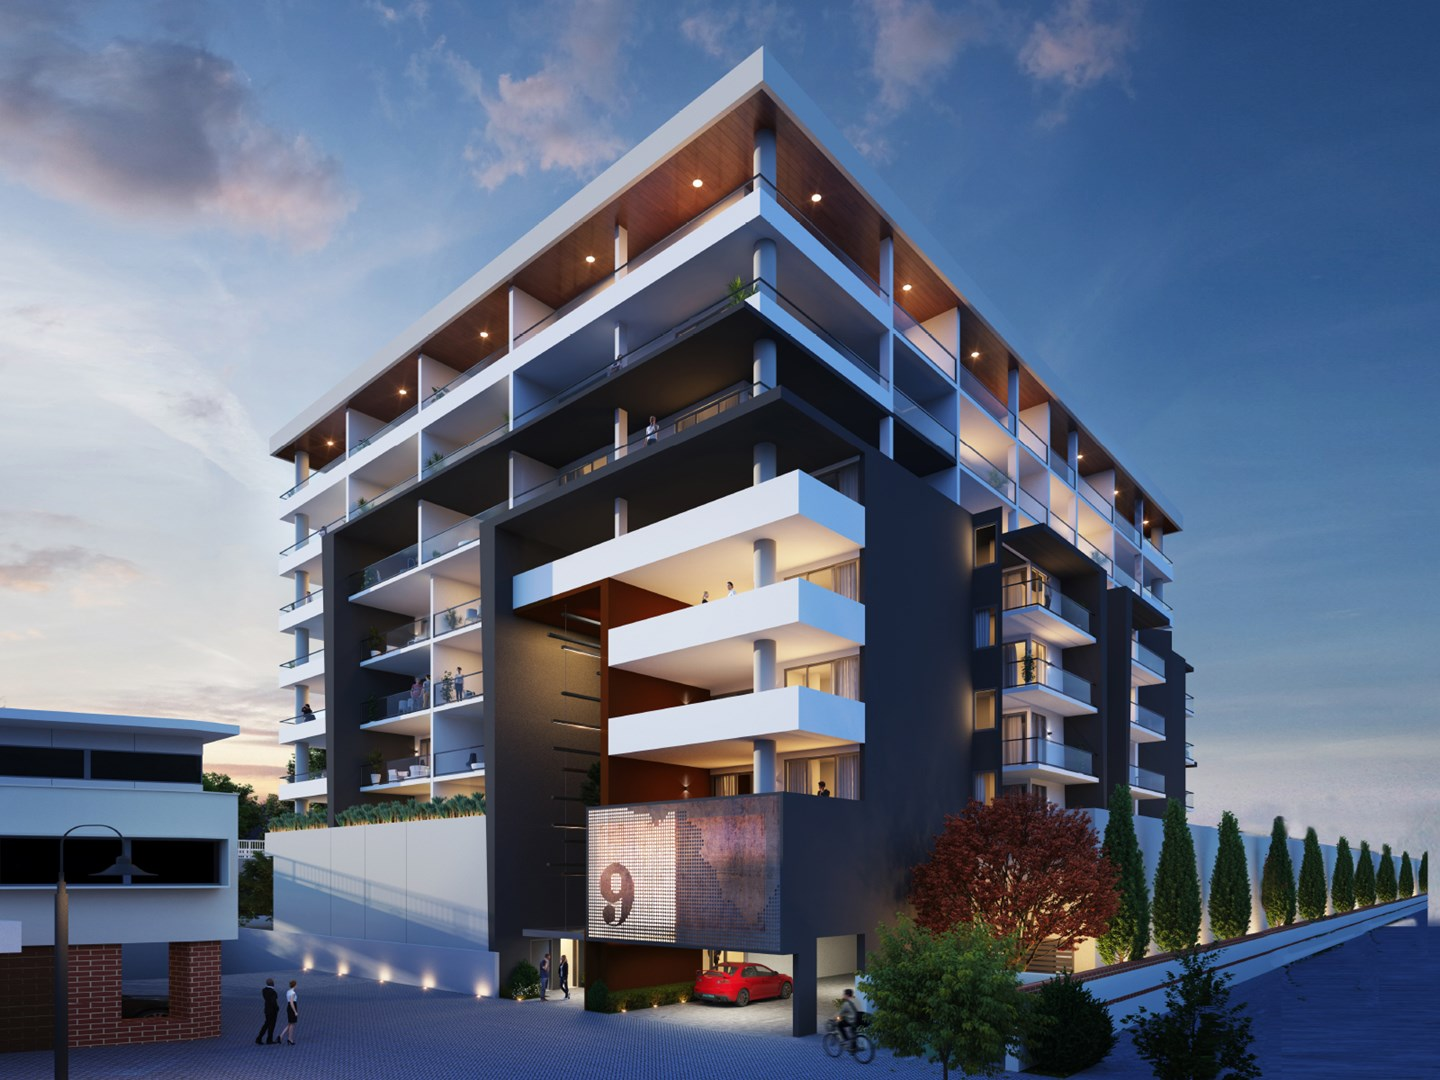 207 35 37 bronte street east perth wa 6004 apartment for 70 terrace road east perth